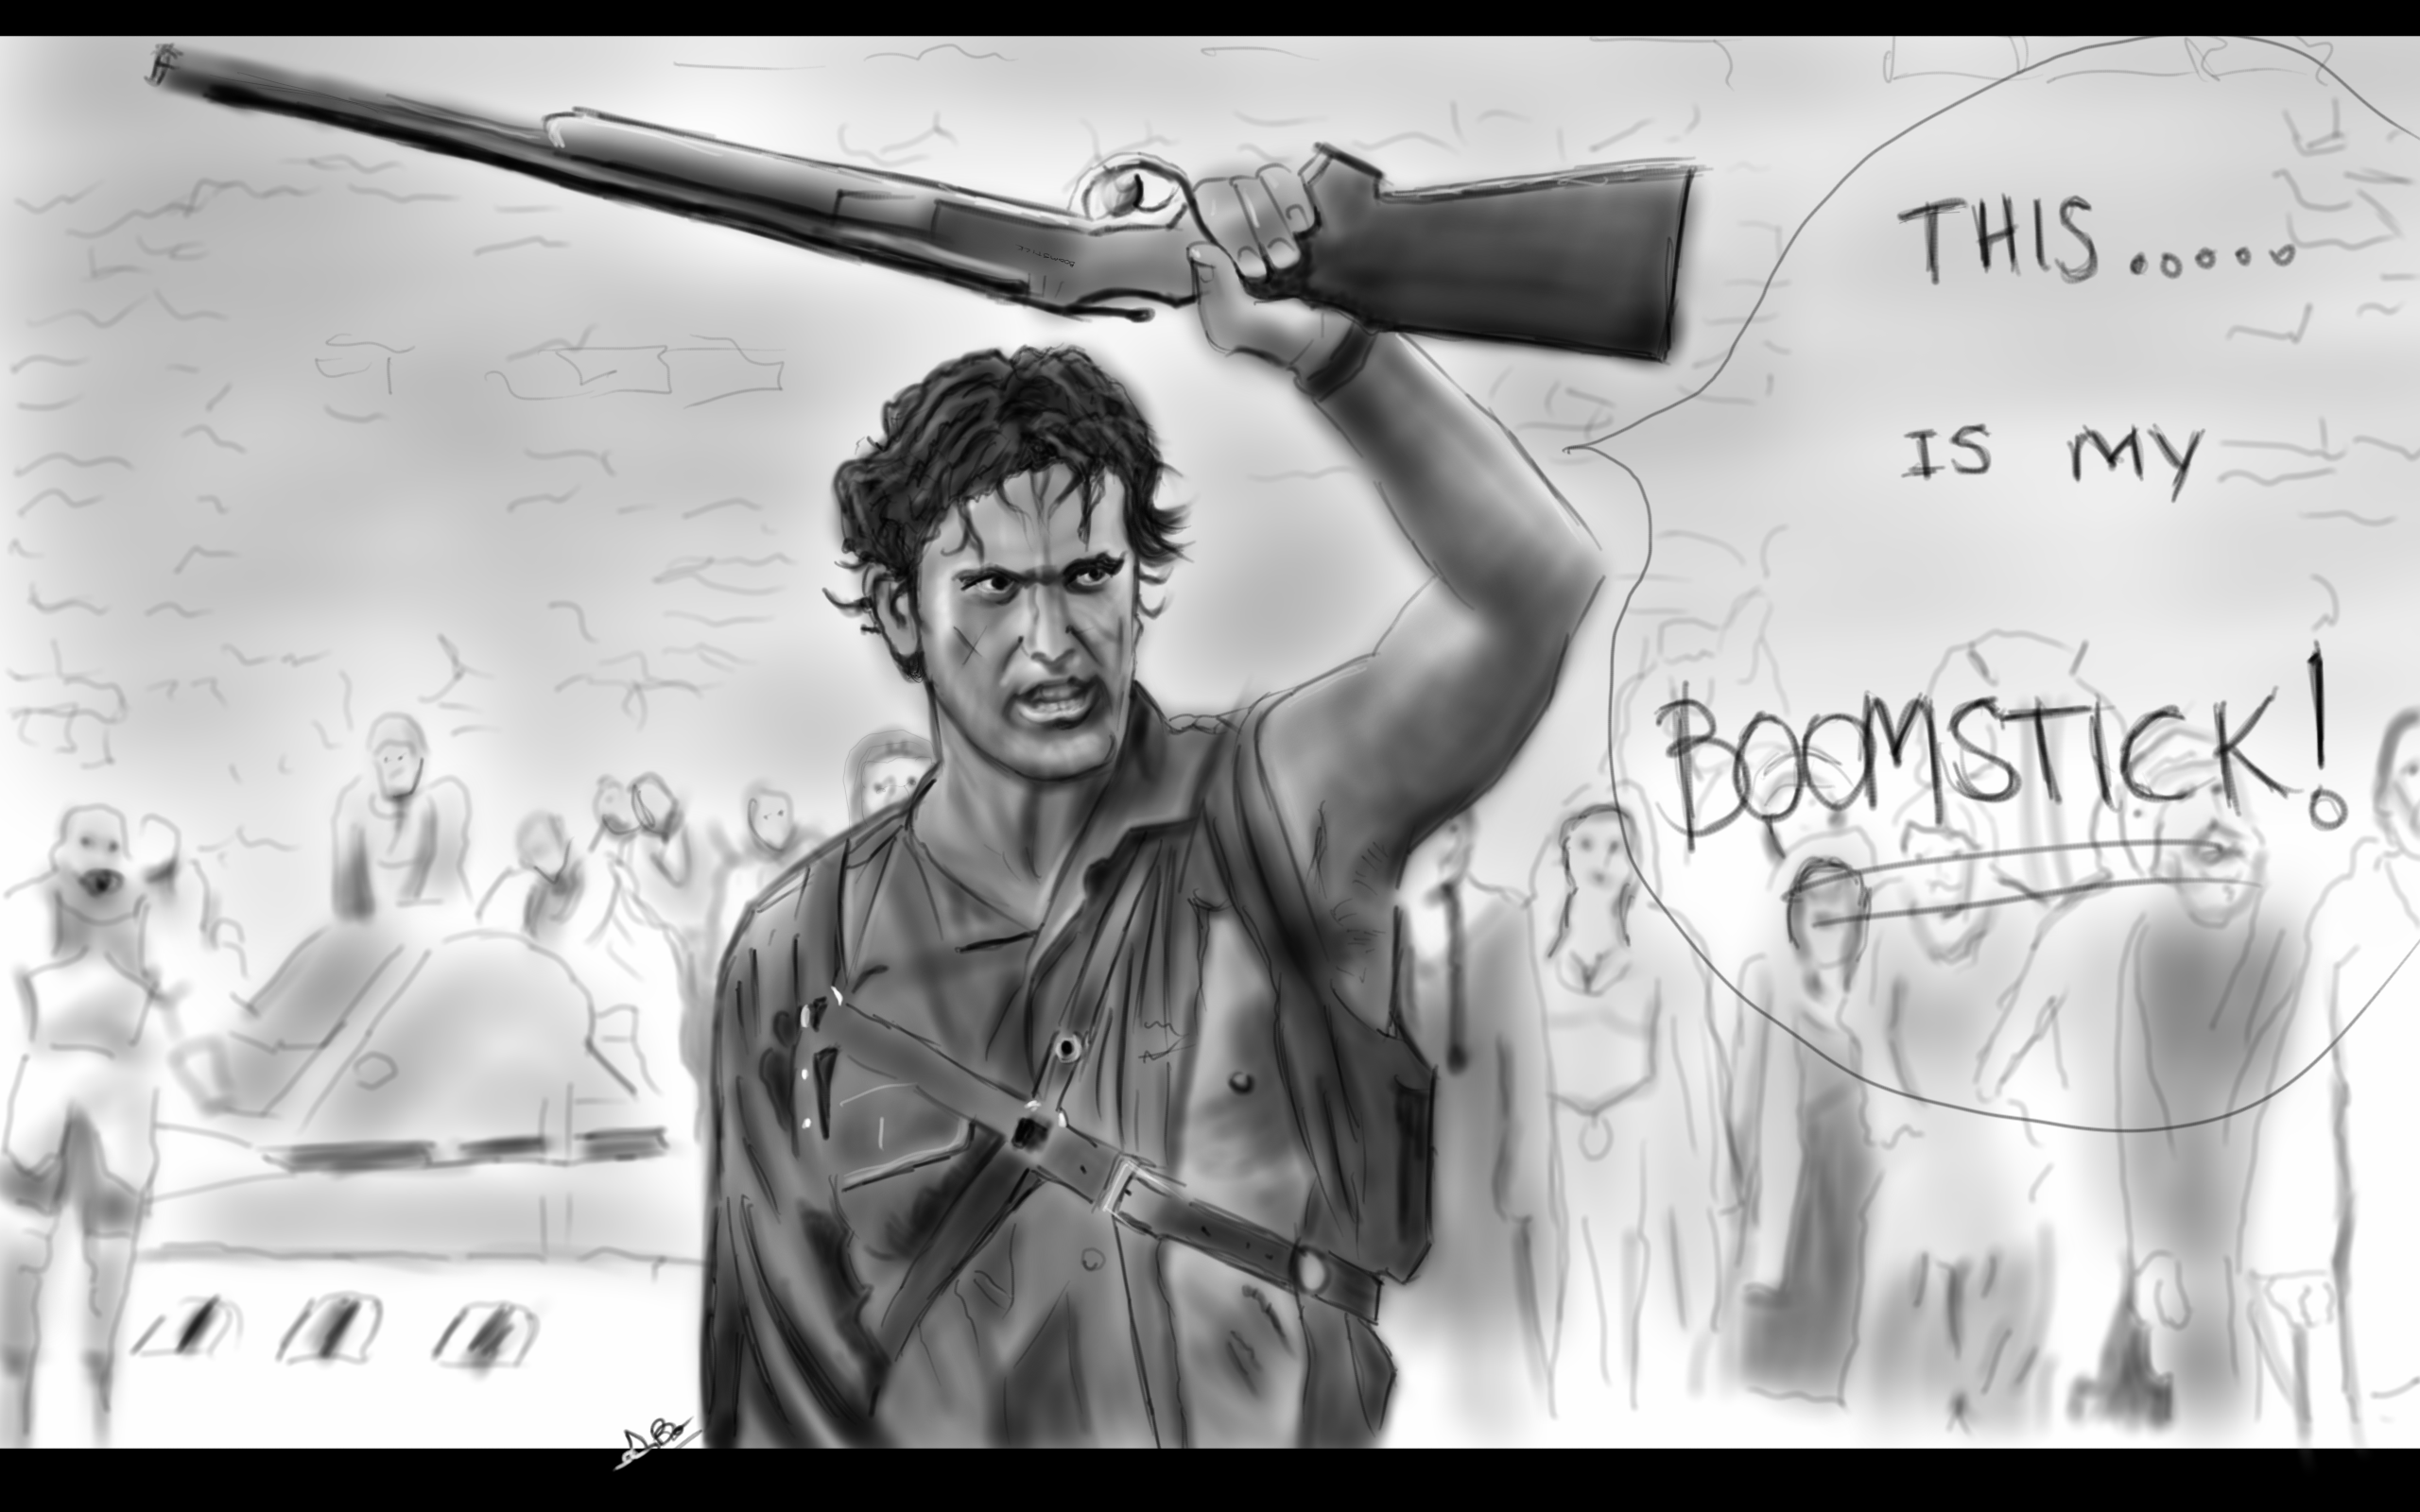 http://orig09.deviantart.net/3779/f/2015/194/a/4/sketch131162846_by_sam_buni-d9186e5.png This Is My Boomstick Wallpaper